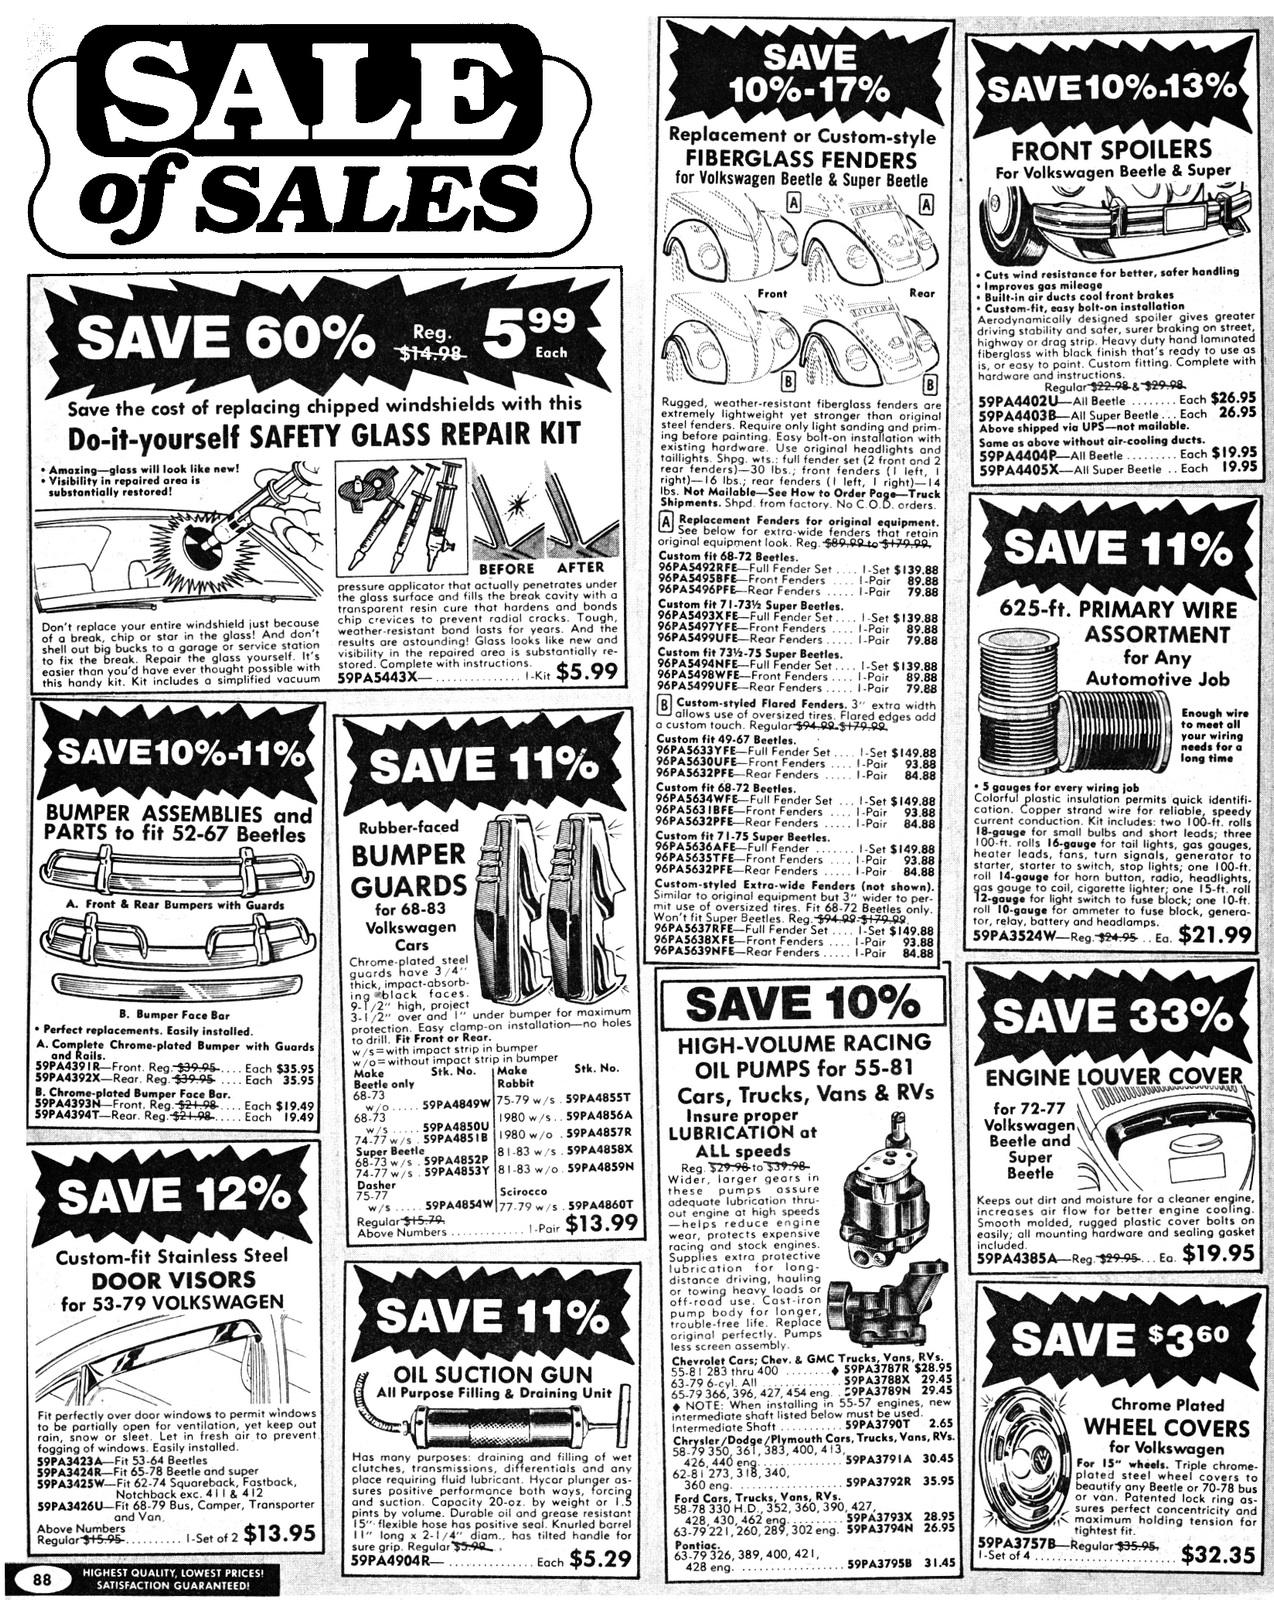 TheSamba com :: Gallery - JC Whitney - Sale of Sales Catalog